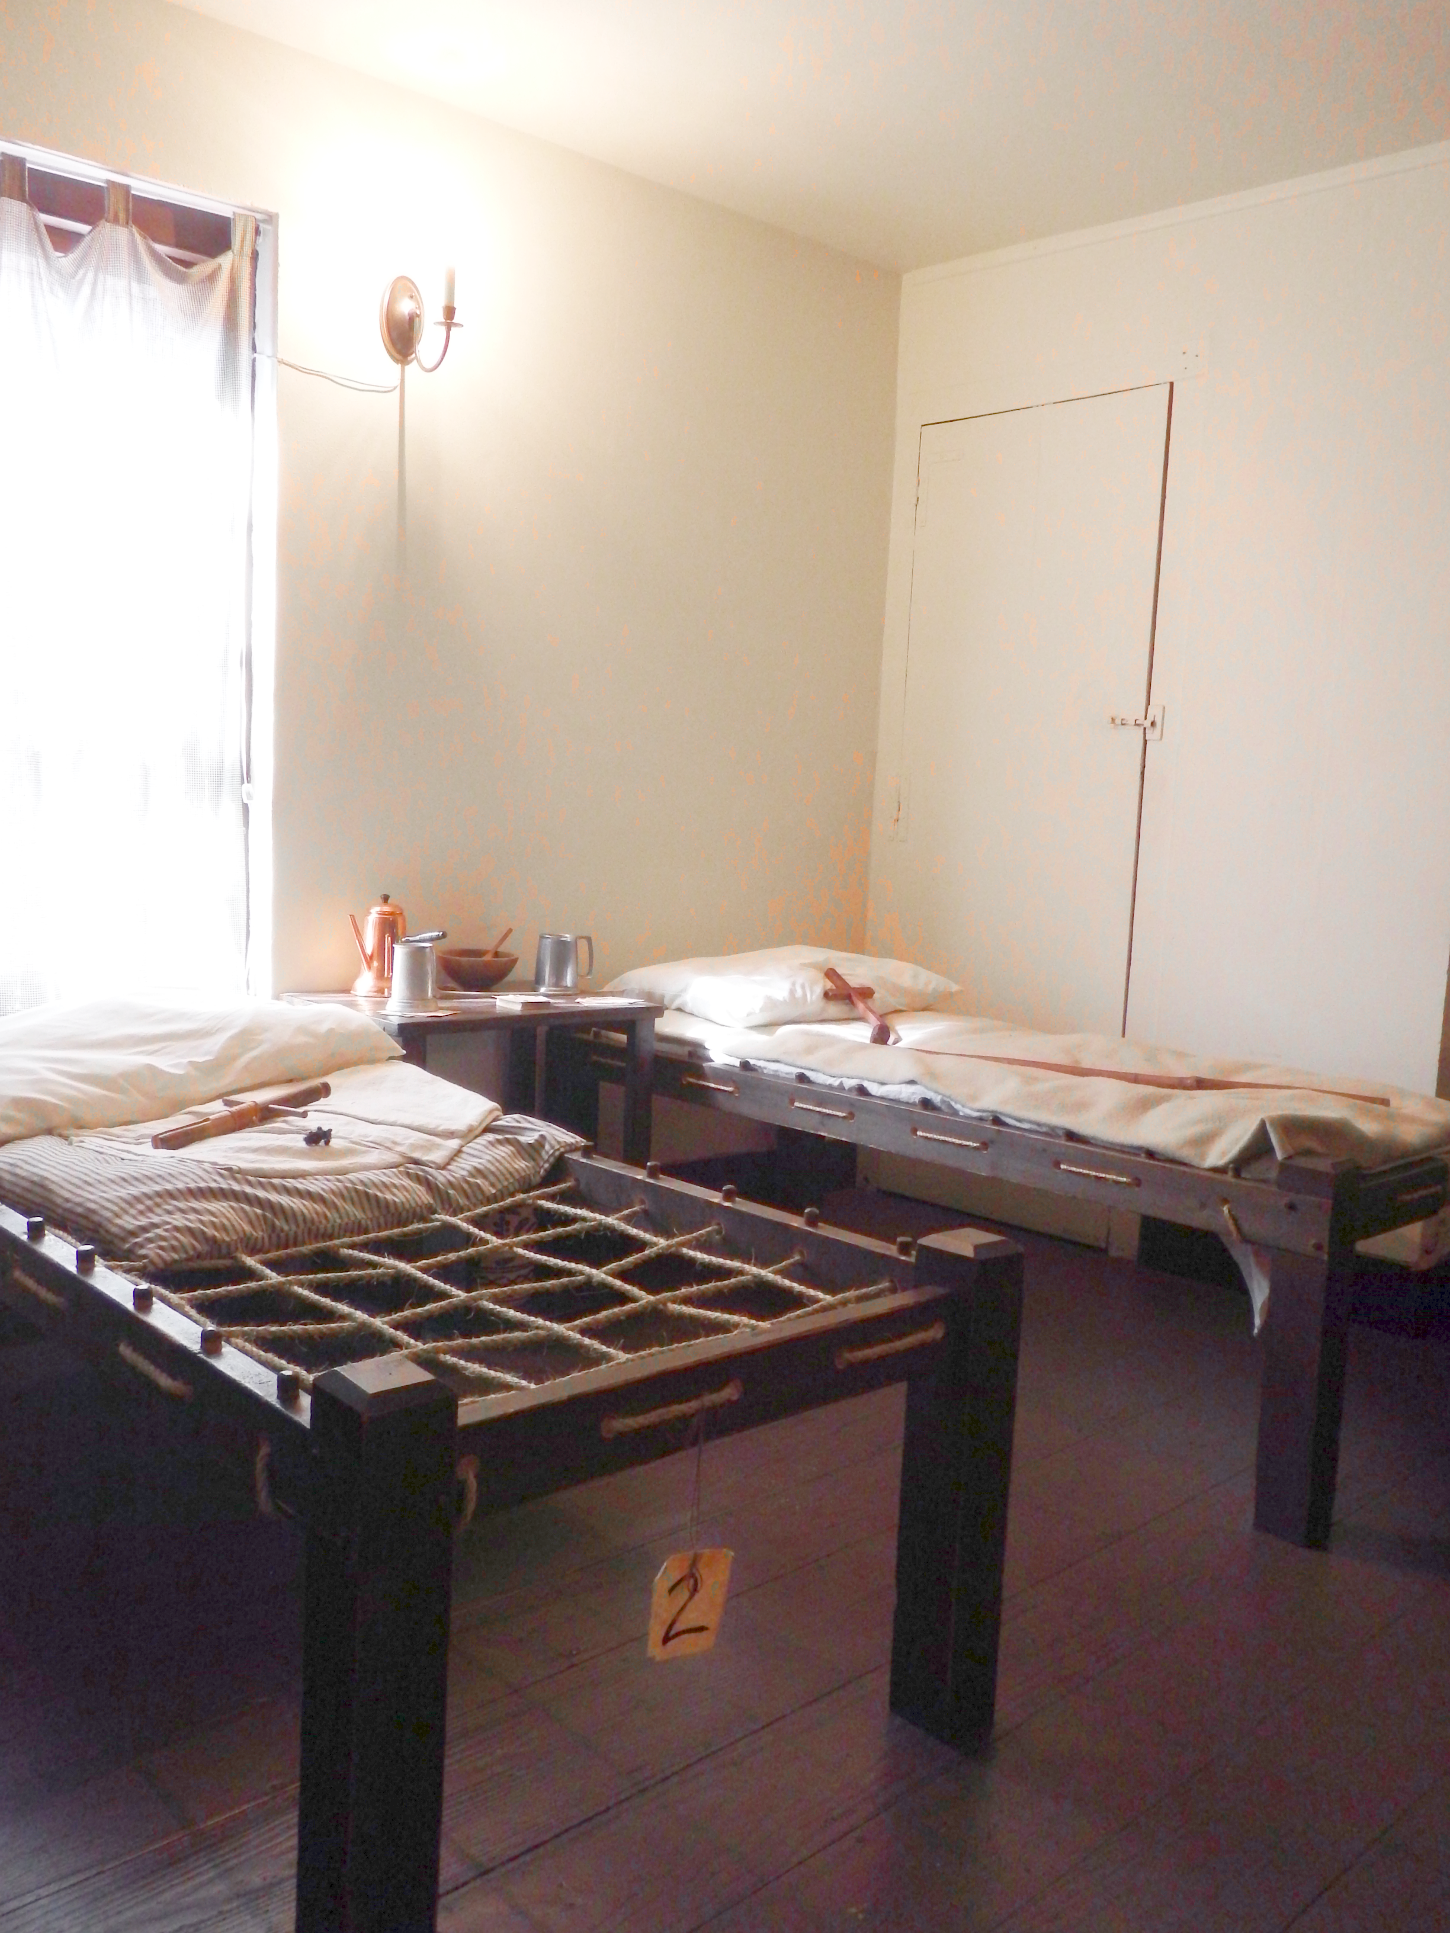 Hospital beds in the 17th century Spanish Hospital Museum